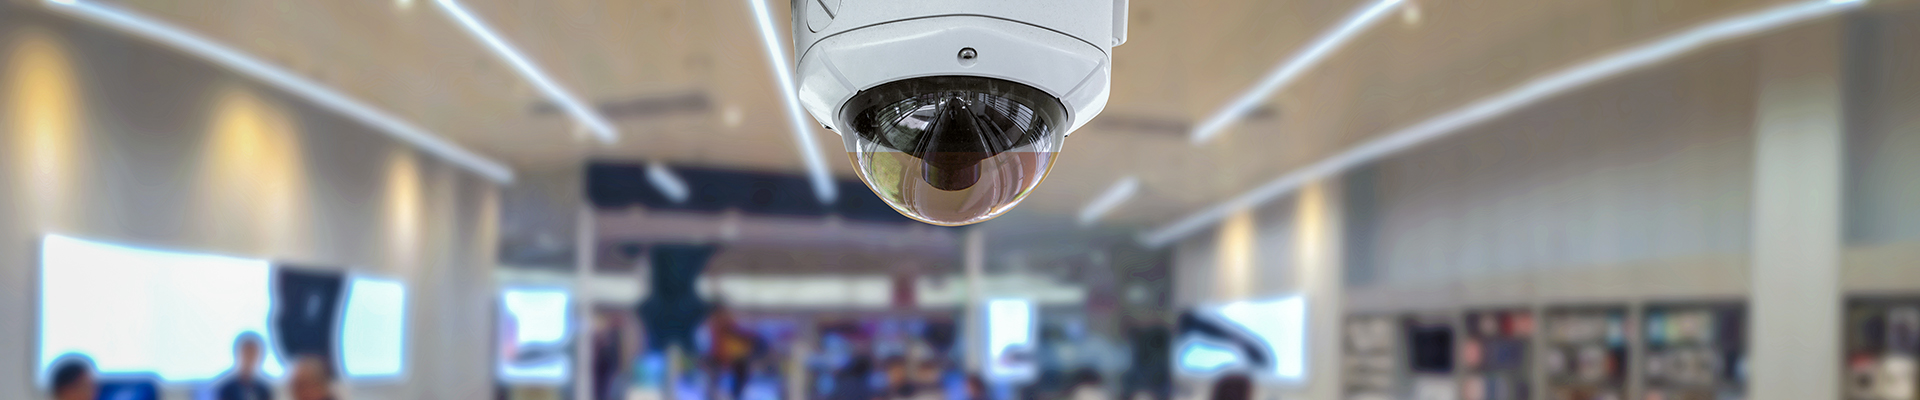 ceiling mounted Security camera